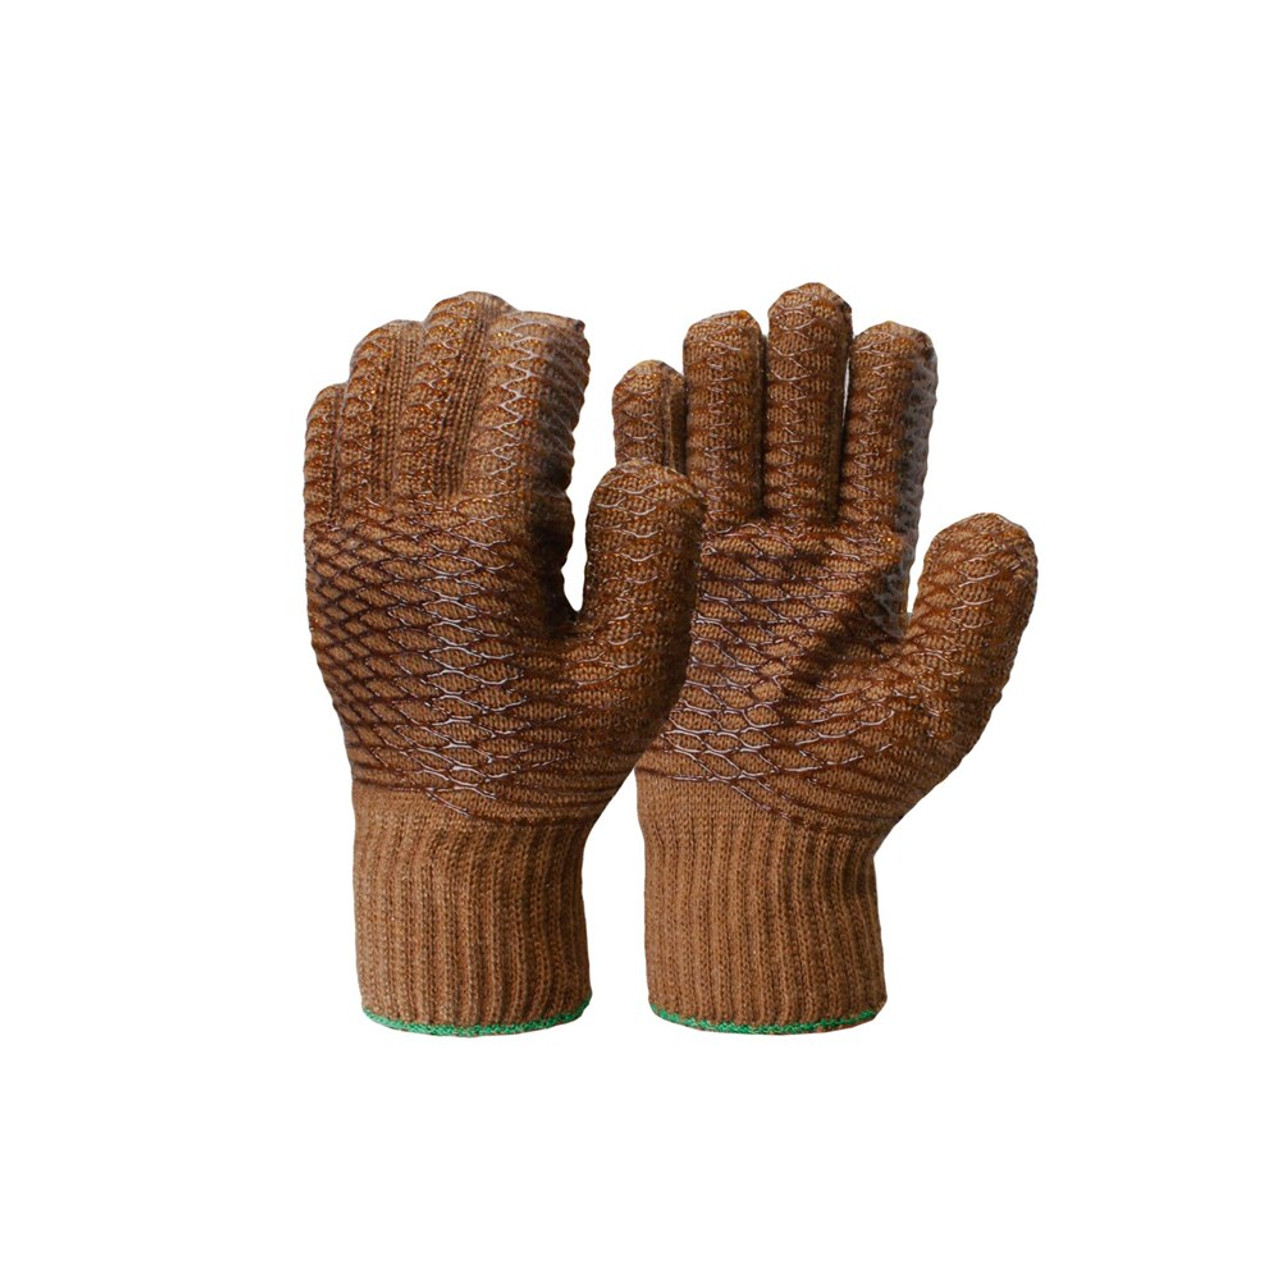 Gloves - Lattice Grip